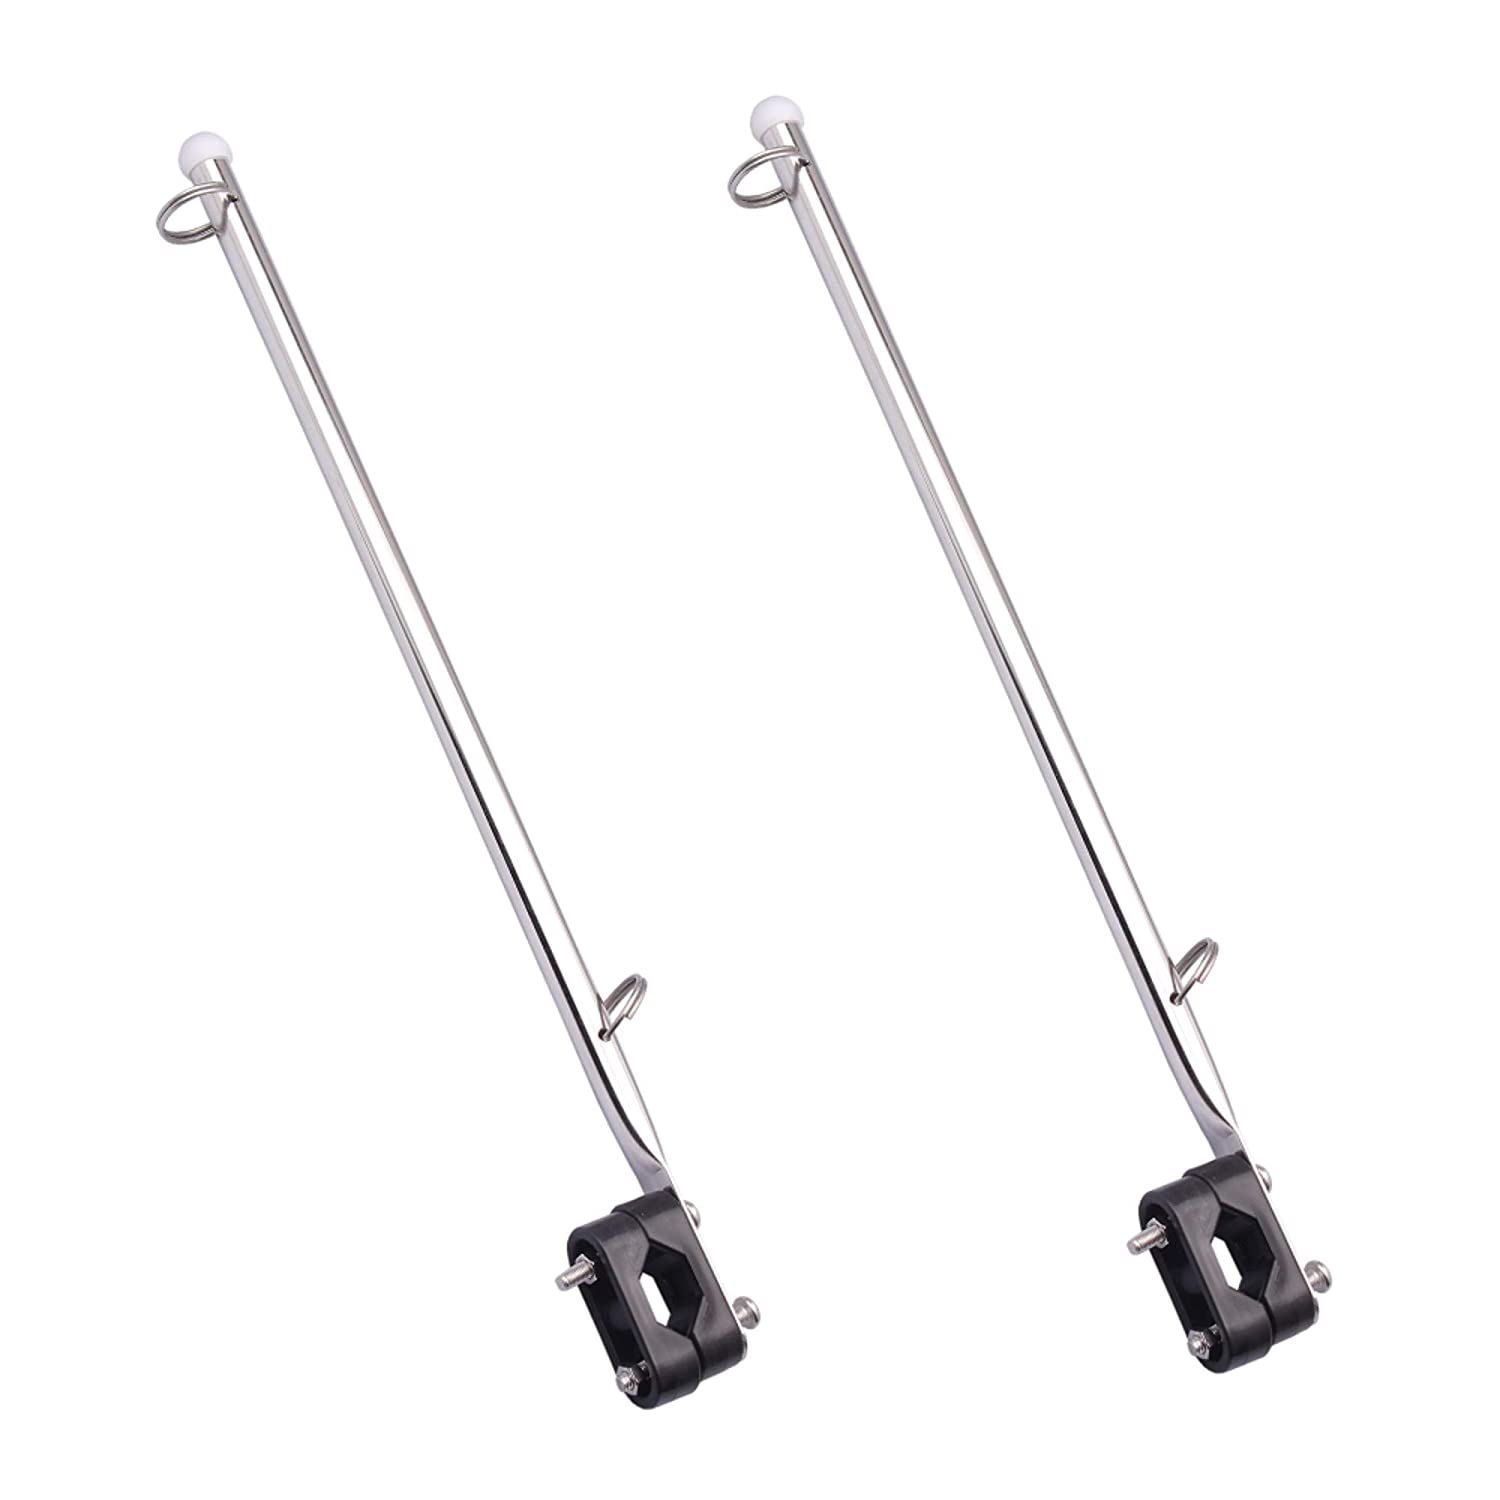 Nextracter Boat Flag Holder Accessories Flags Marine Grade Stainless Steel for Boat Yacht, Water Sports, Marine Flag Pole Pack of 2